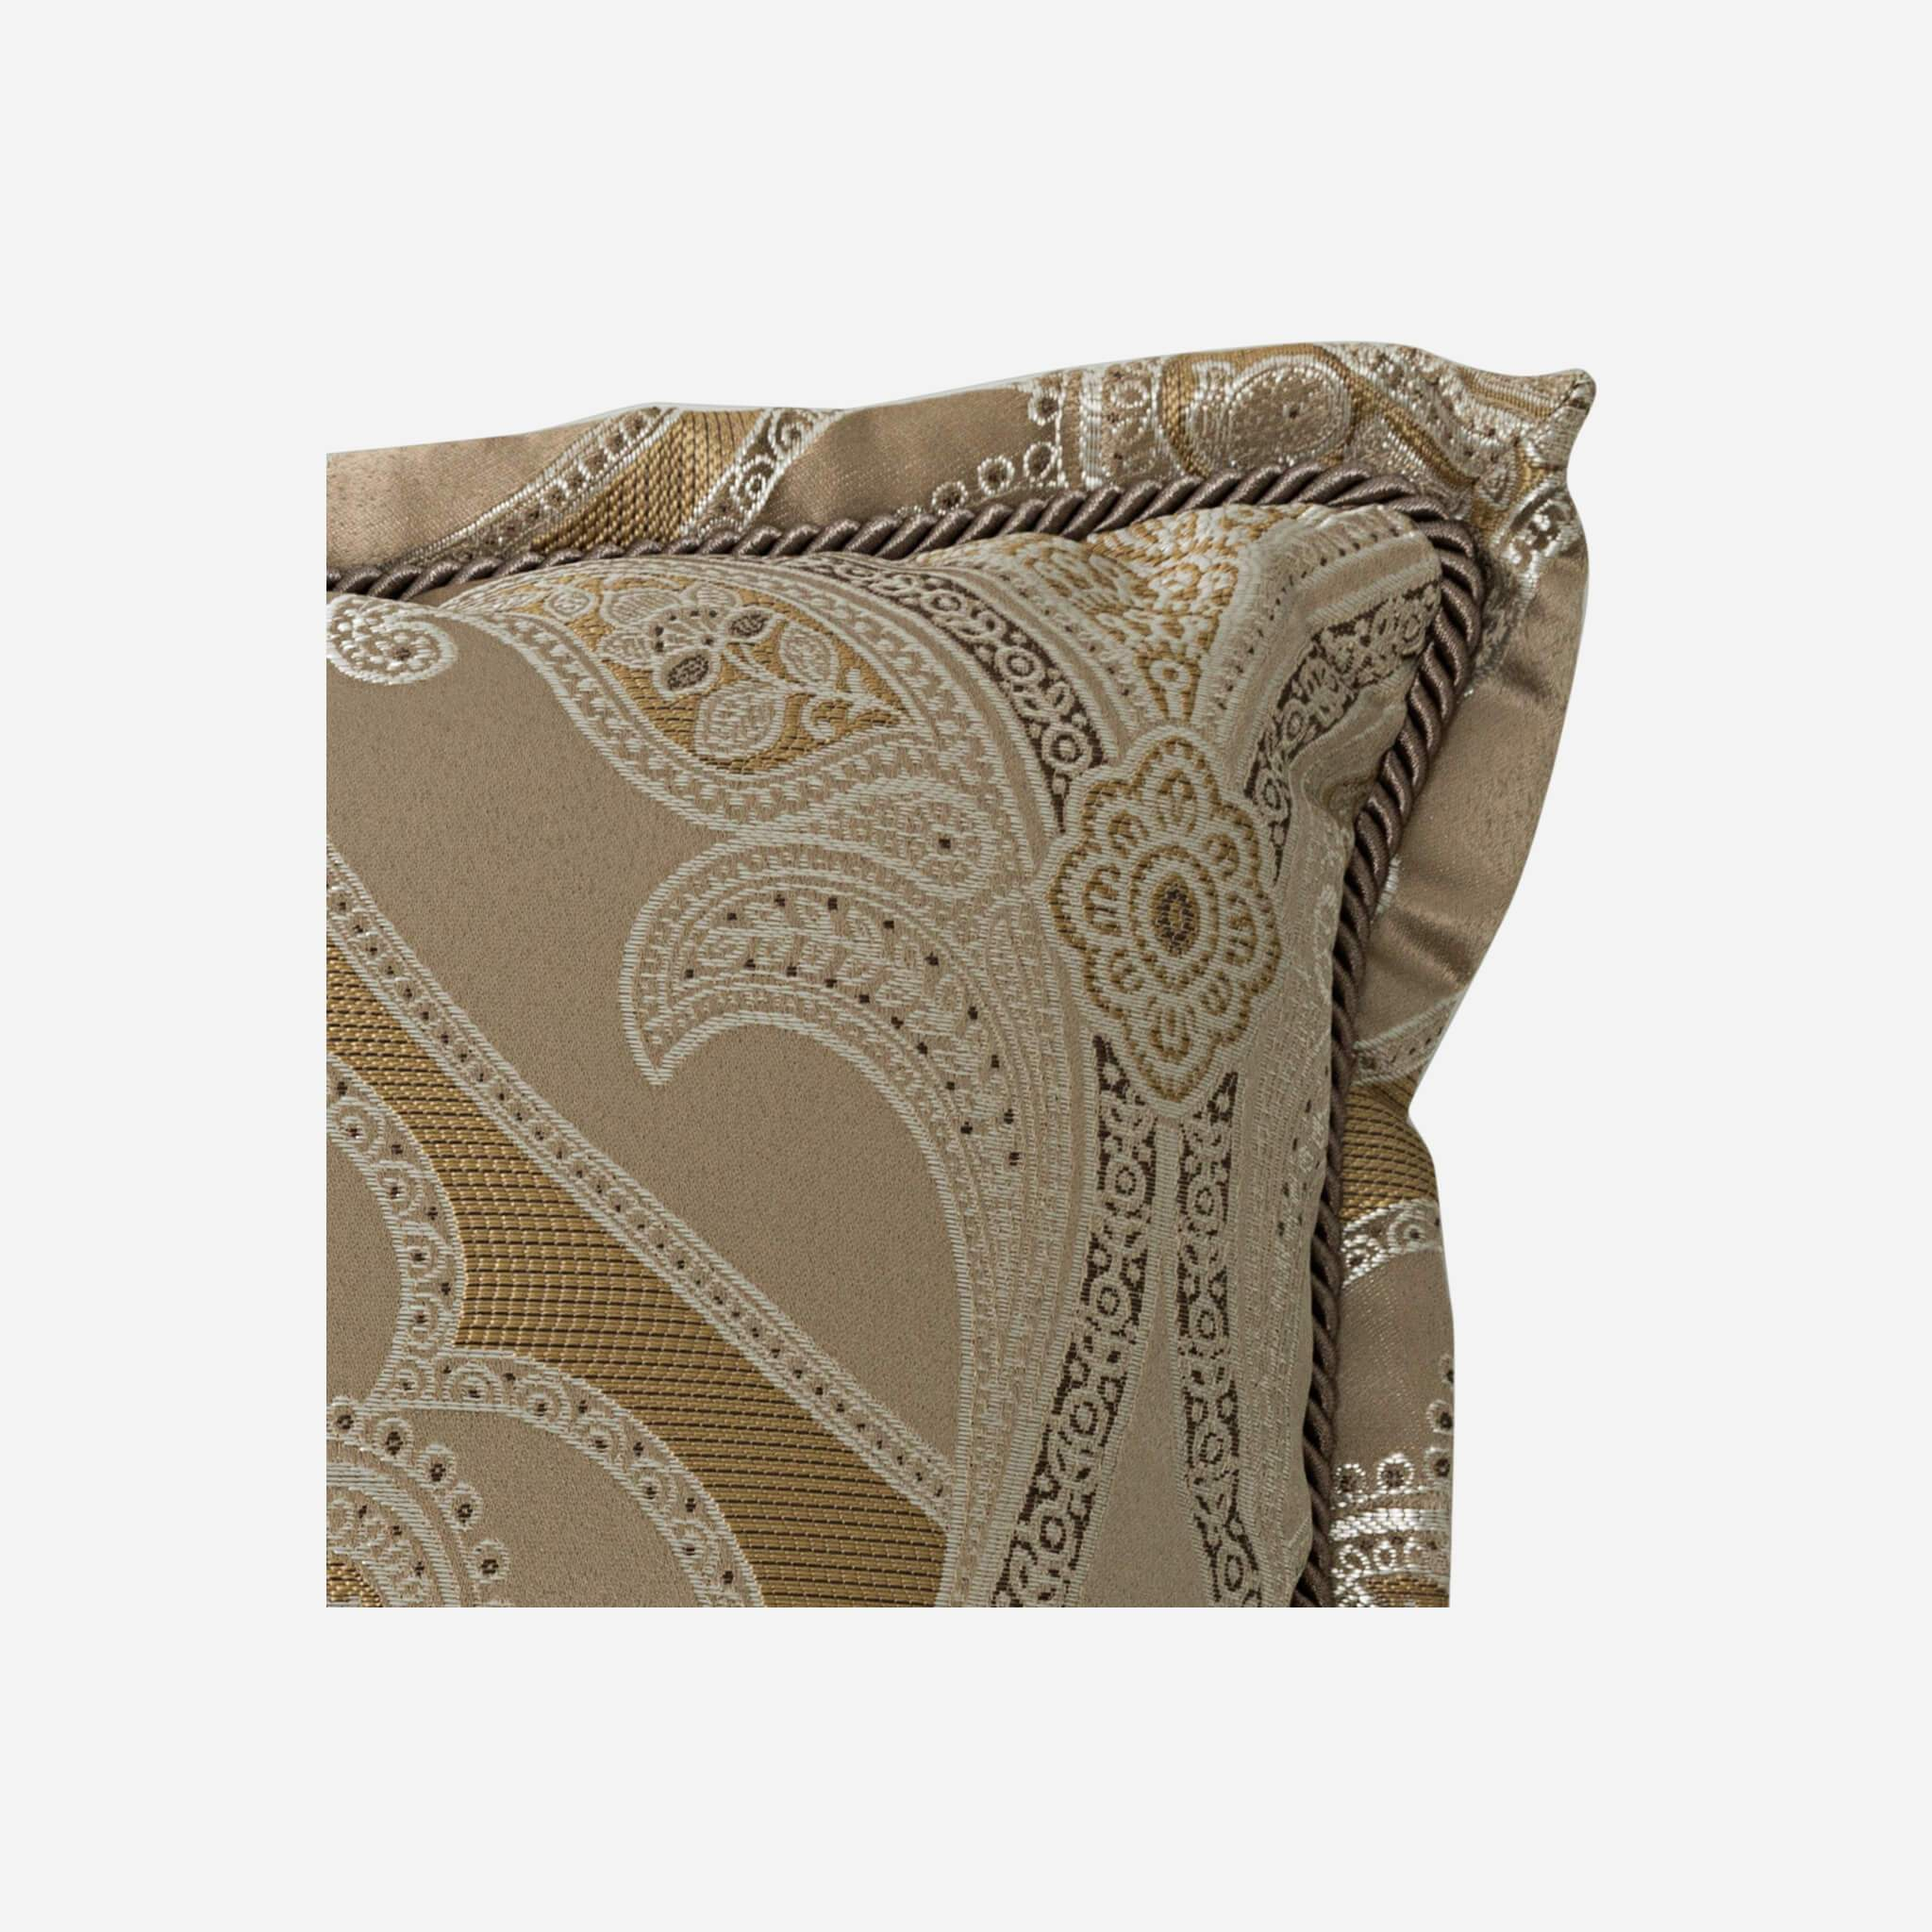 "Alexander 16"" x 16"" Reversible Fashion Pillow - Details"